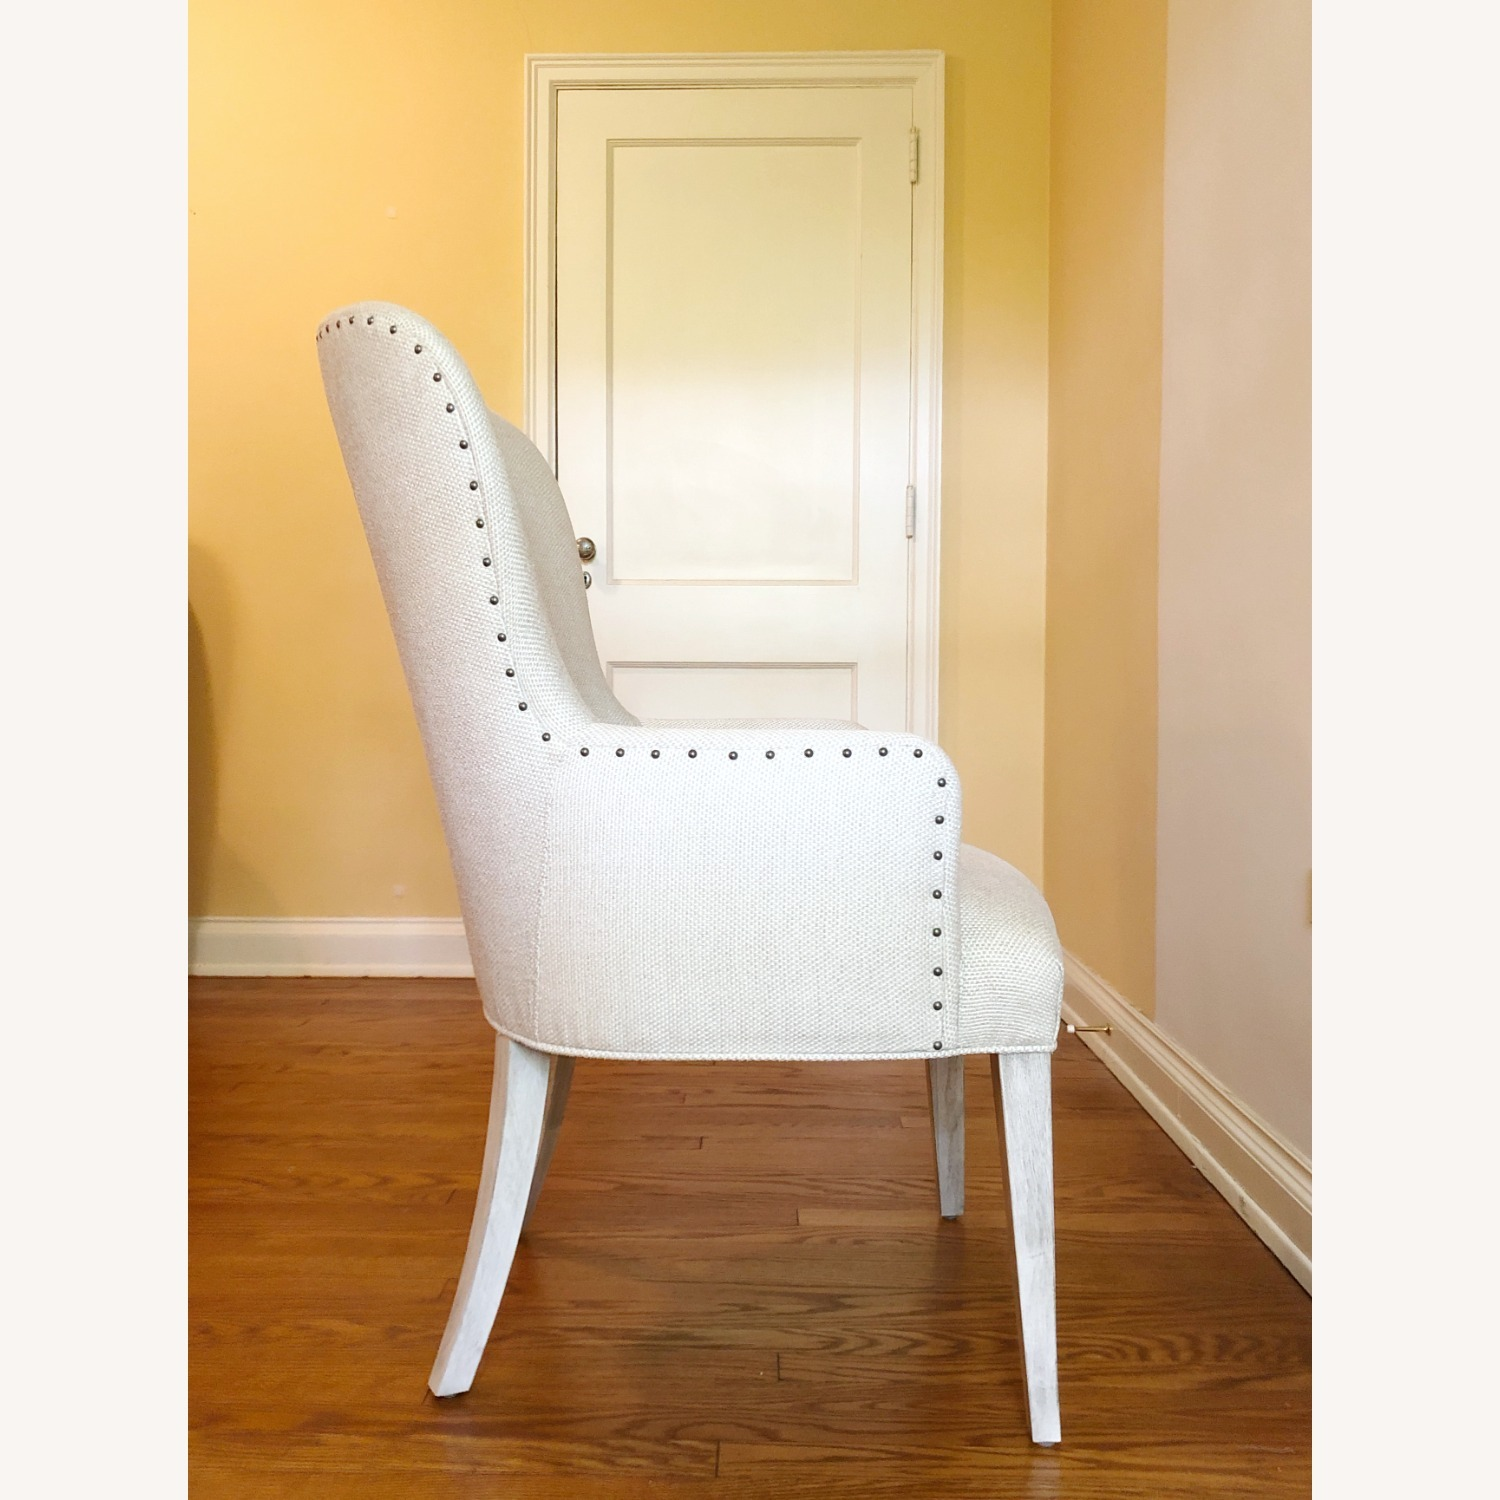 Oyster Bay Baxter Upholstered Arm Chair - image-4